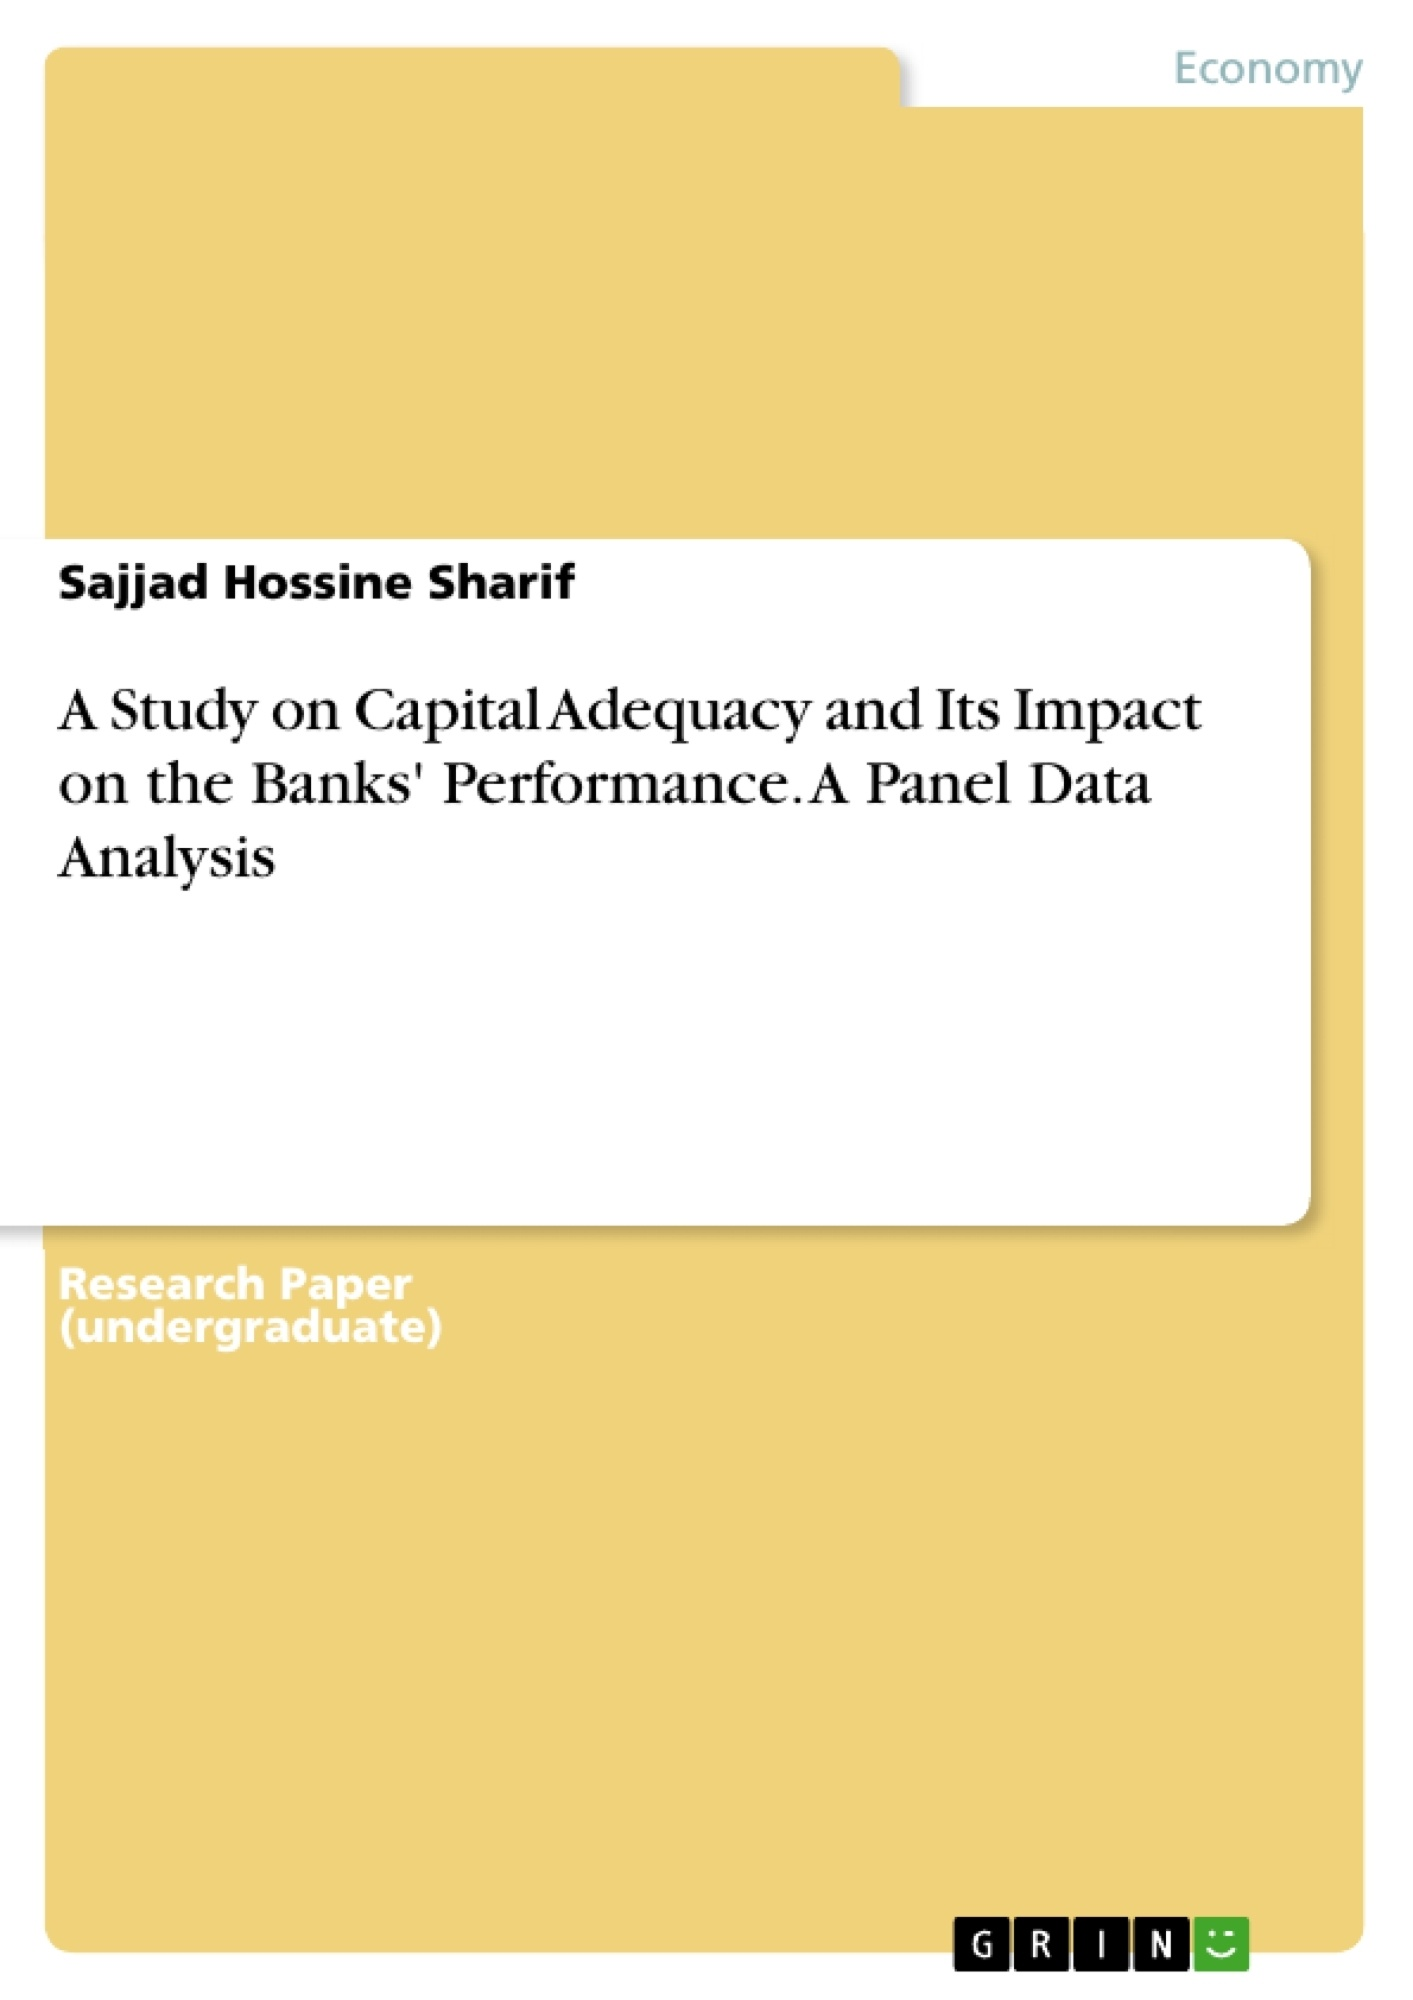 Title: A Study on Capital Adequacy and Its Impact on the Banks' Performance. A Panel Data Analysis